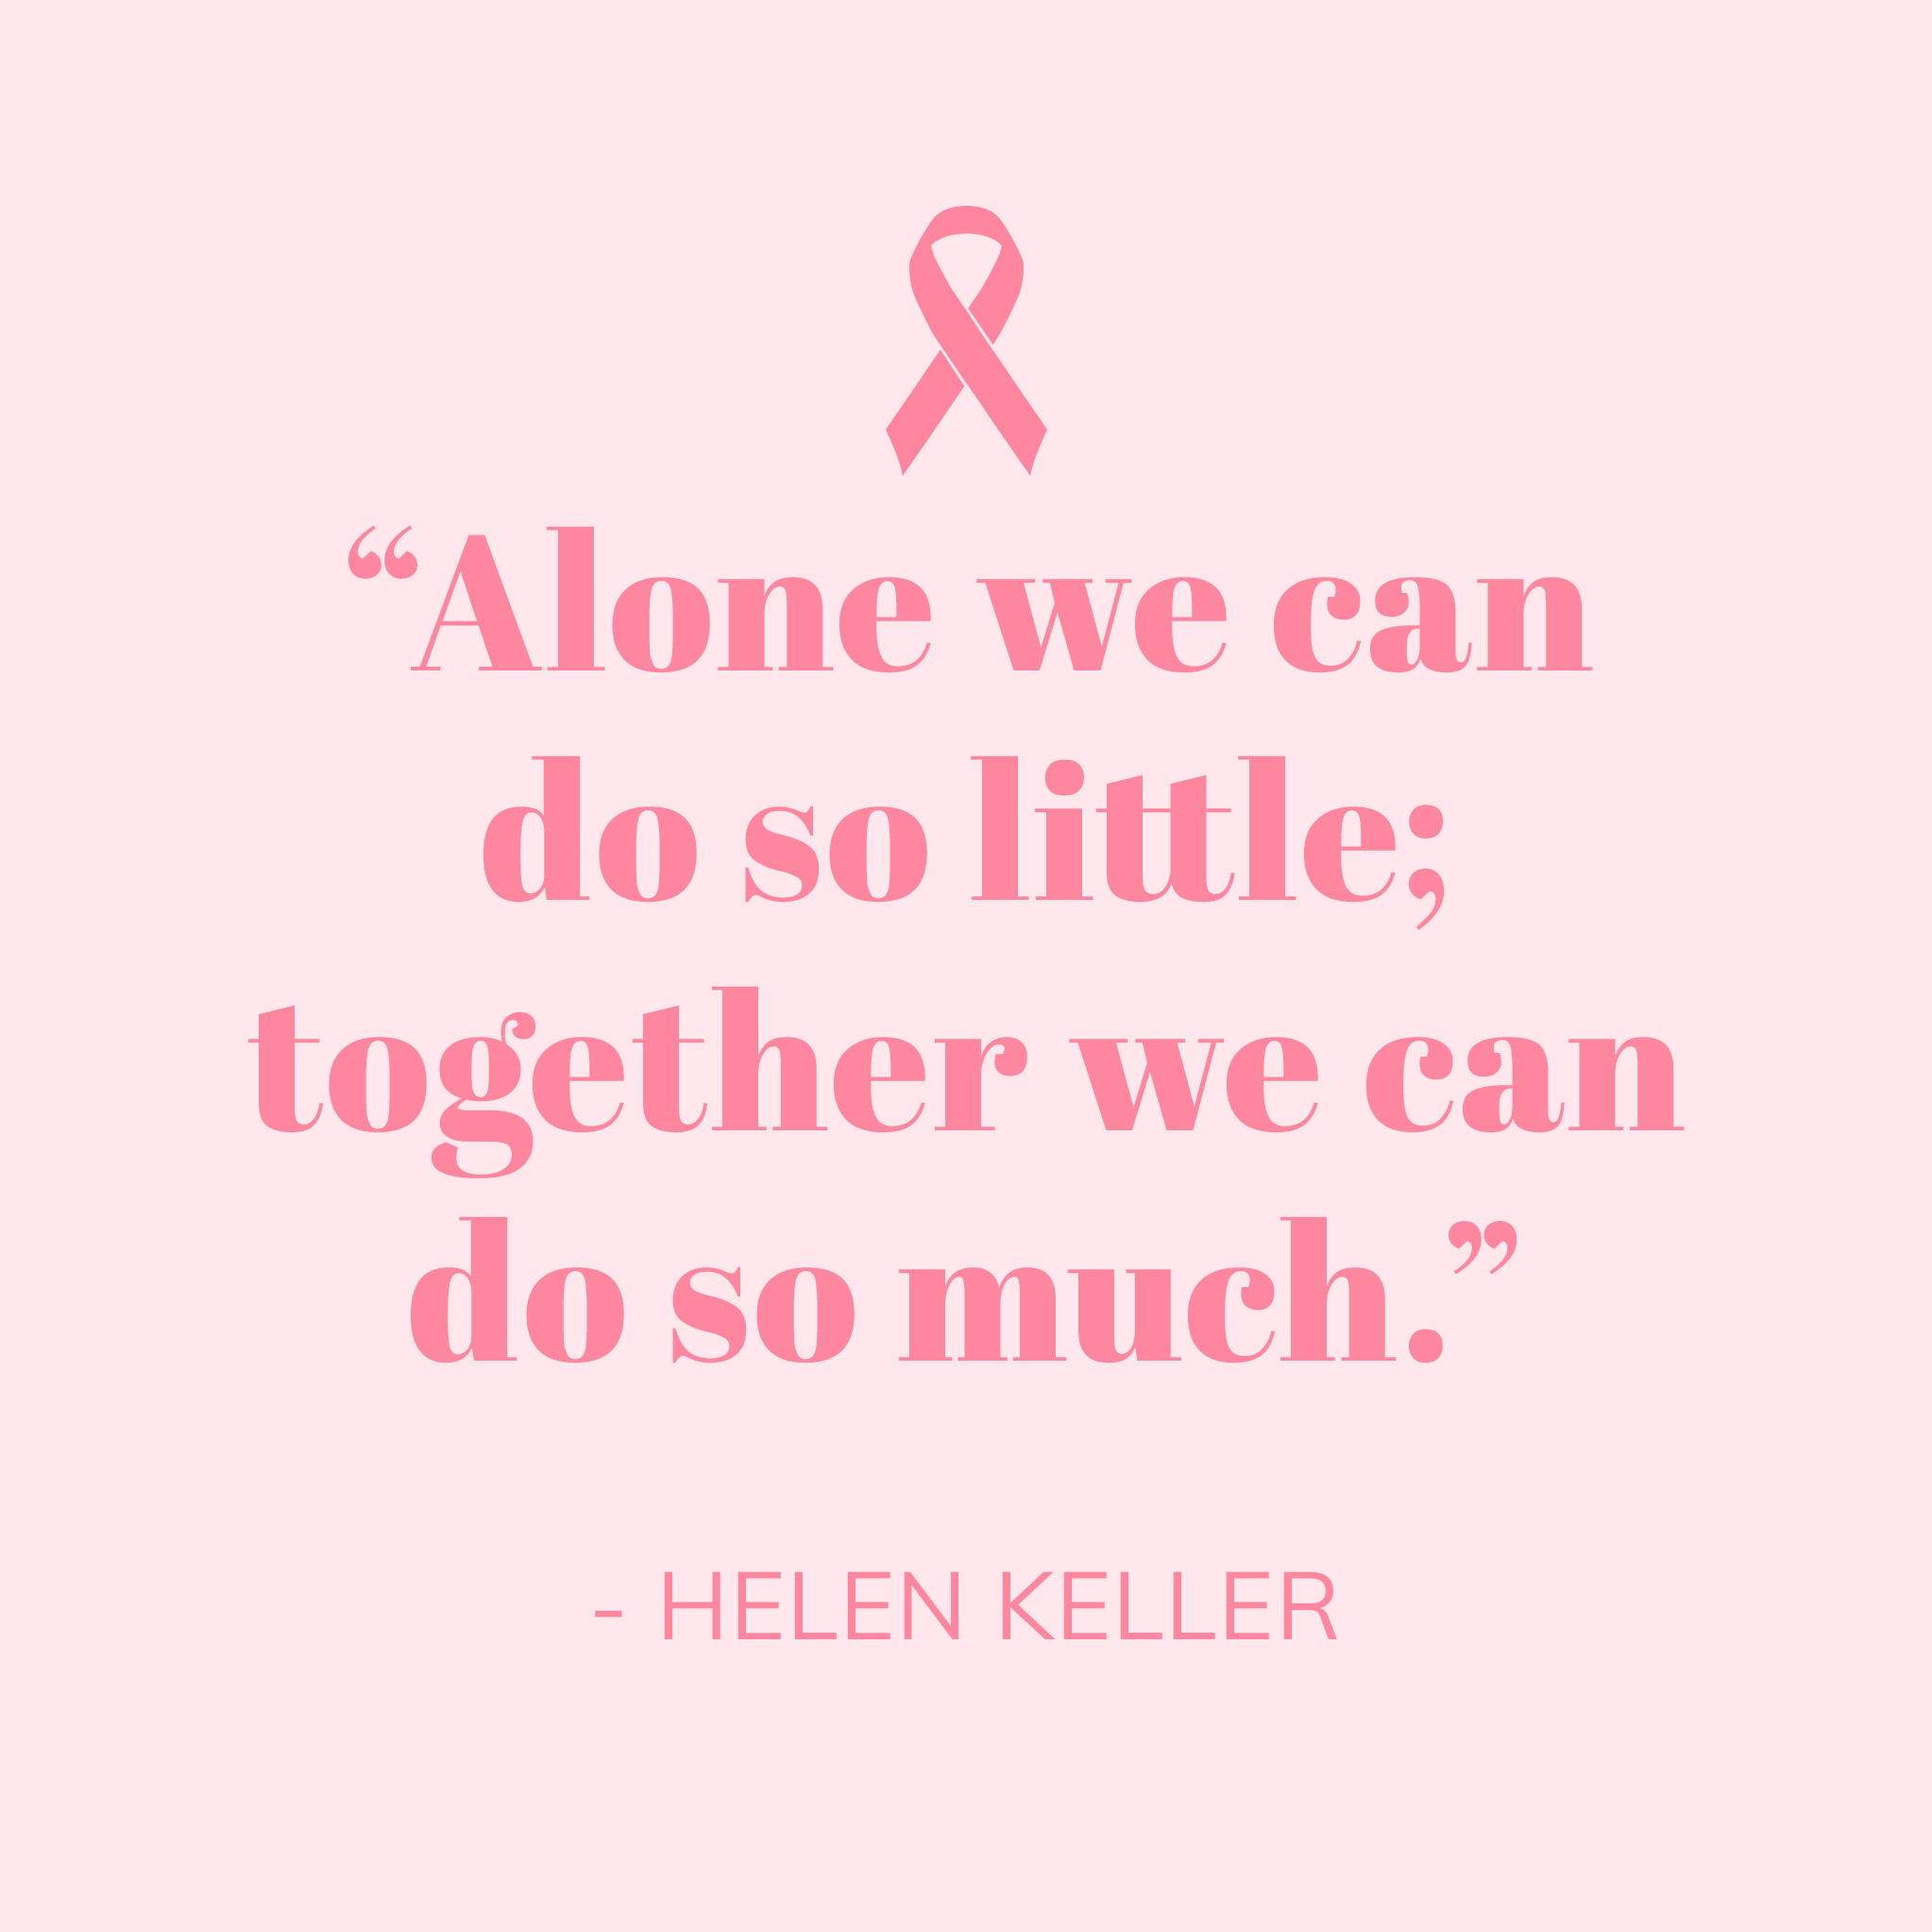 social-organic-breastcancer-quote